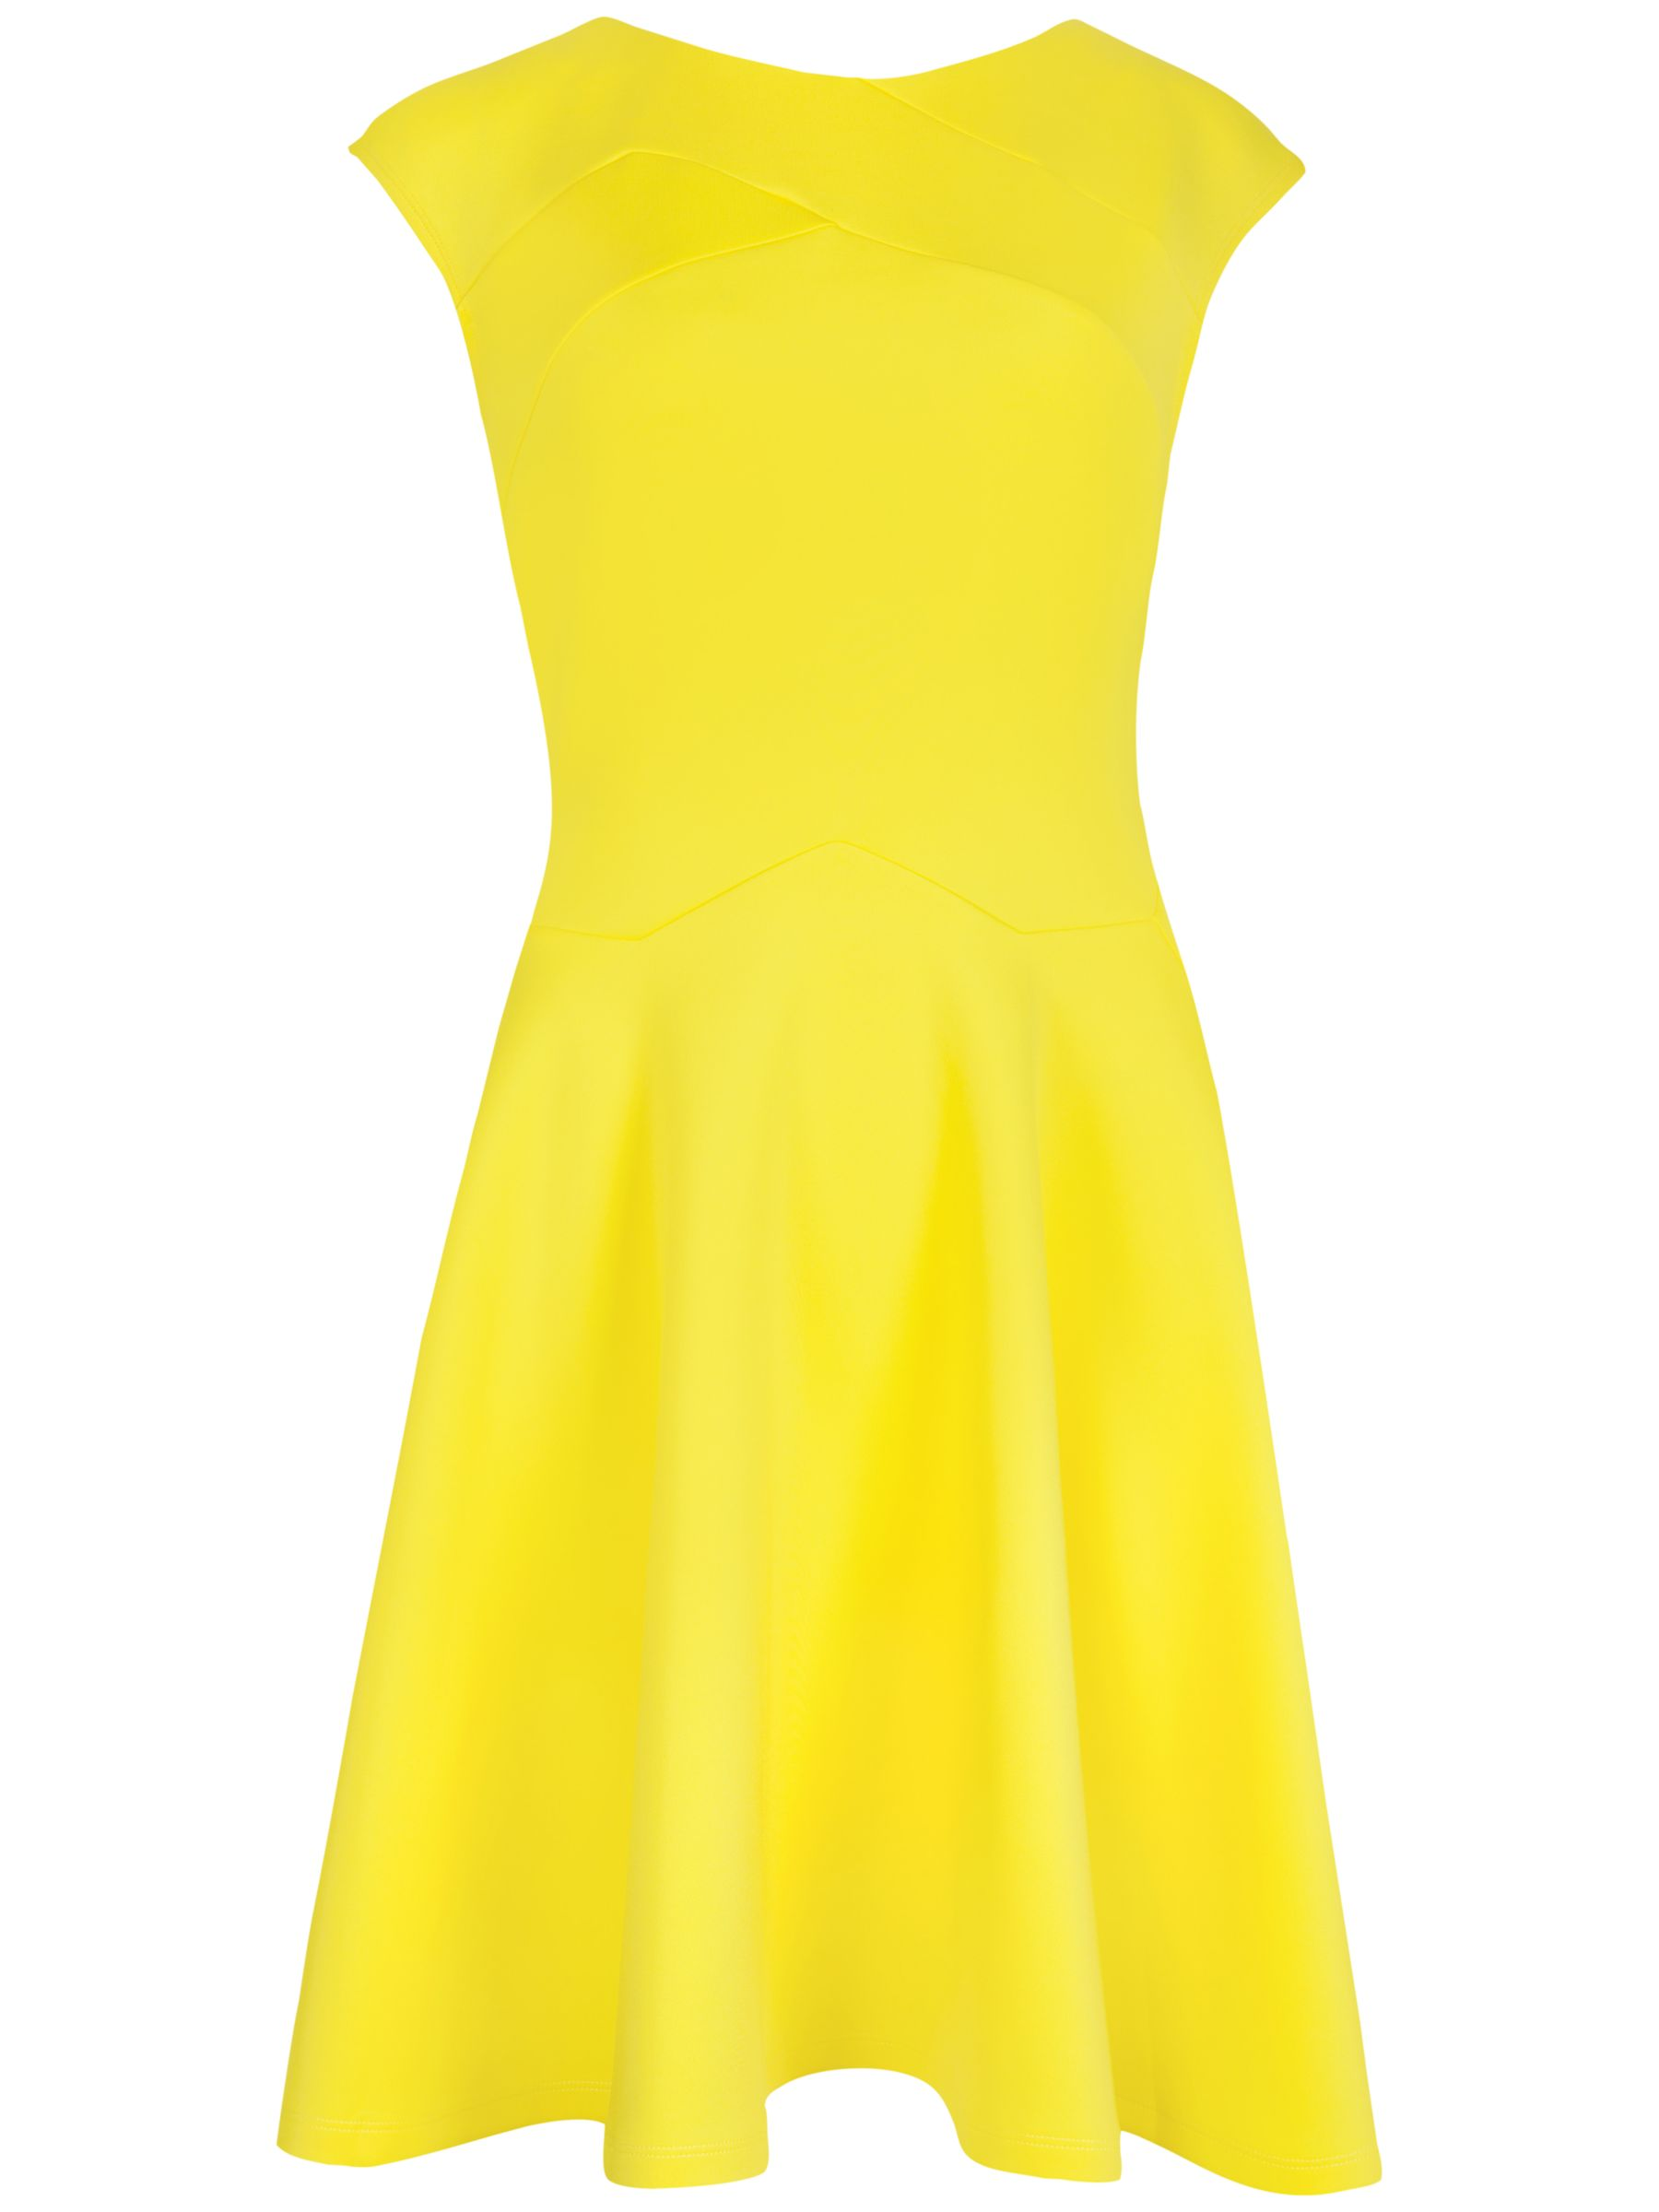 ted baker arwyn panelled skater dress yellow, ted, baker, arwyn, panelled, skater, dress, yellow, ted baker, 4|3|2|5|1|0, women, womens dresses, gifts, wedding, wedding clothing, female guests, fashion magazine, womenswear, men, brands l-z, 1525319